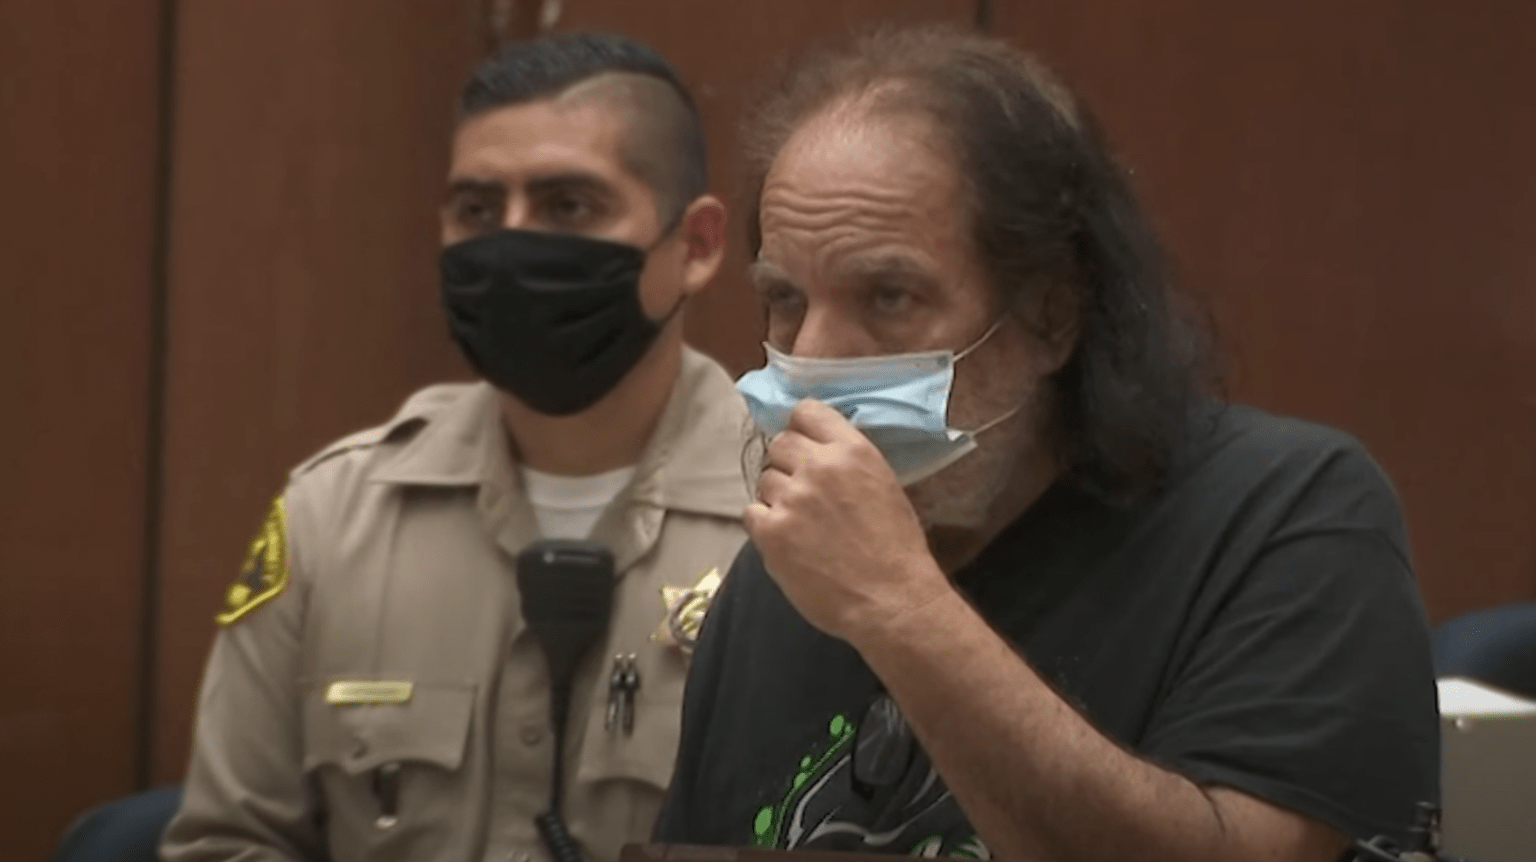 """Ron Jeremy accused of having sex with 87-year-old who """"could not consent"""", raping several others"""